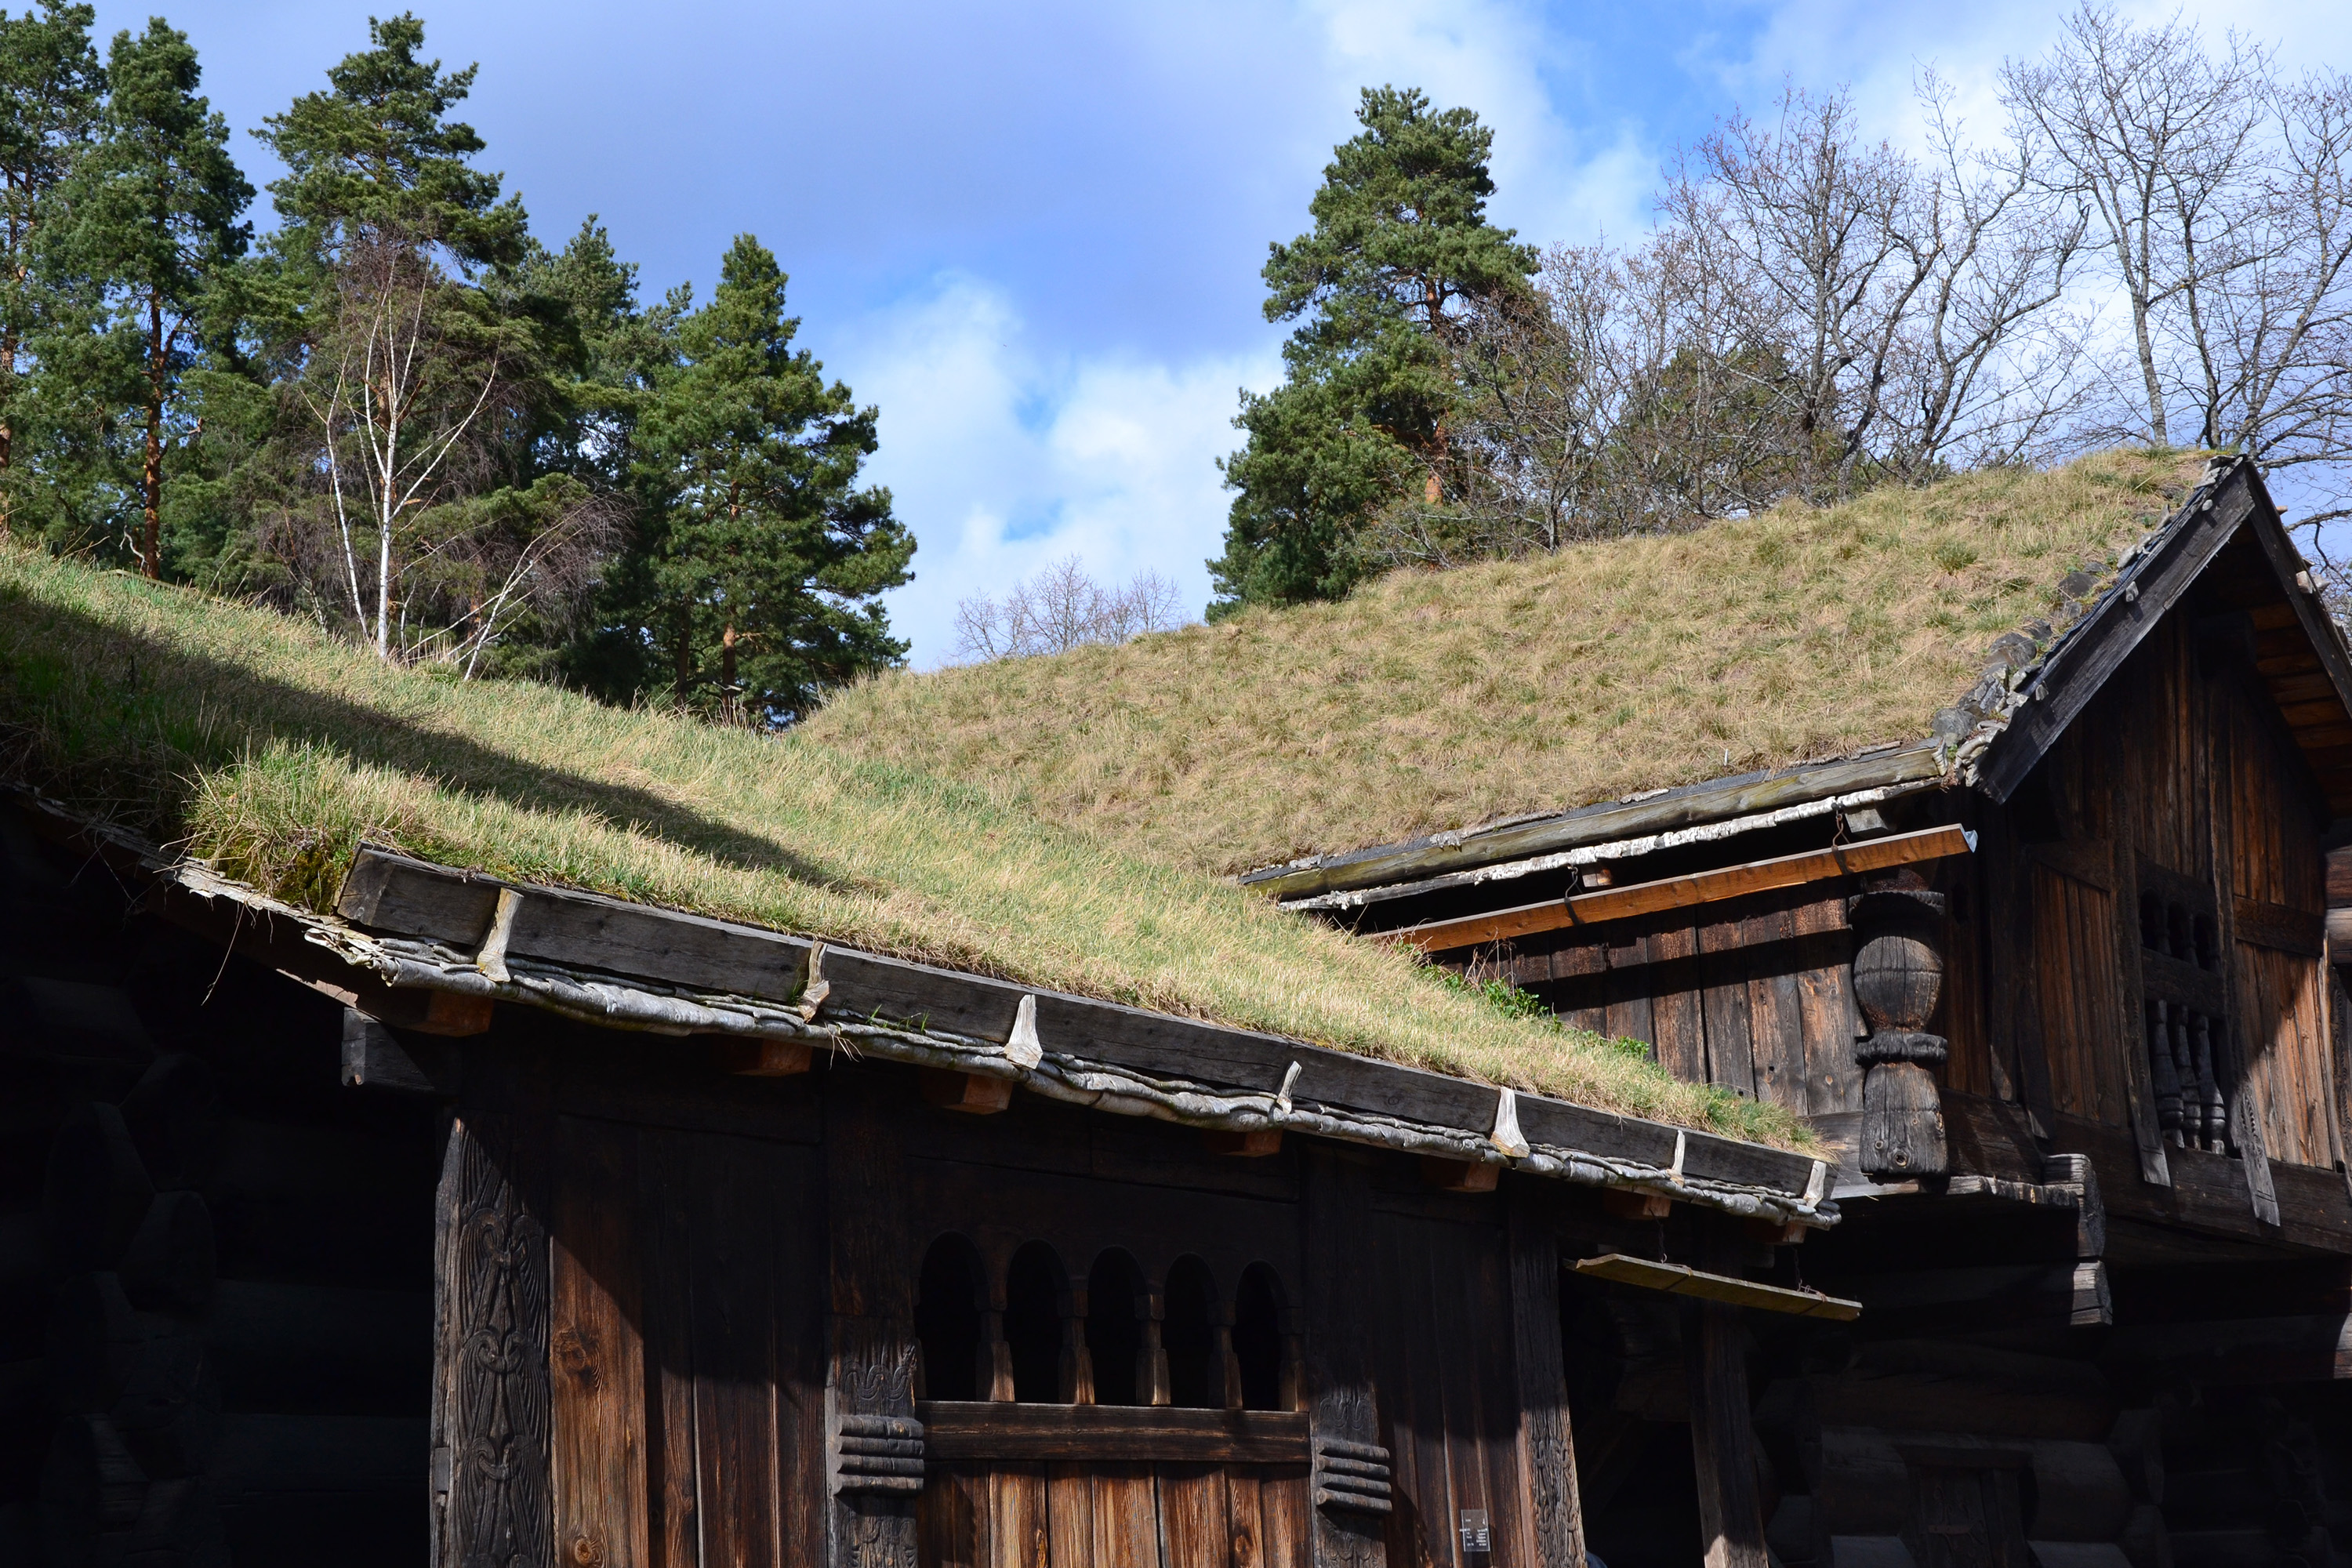 Green roof, Ancient, Medieval, Traditional, Tradition, HQ Photo